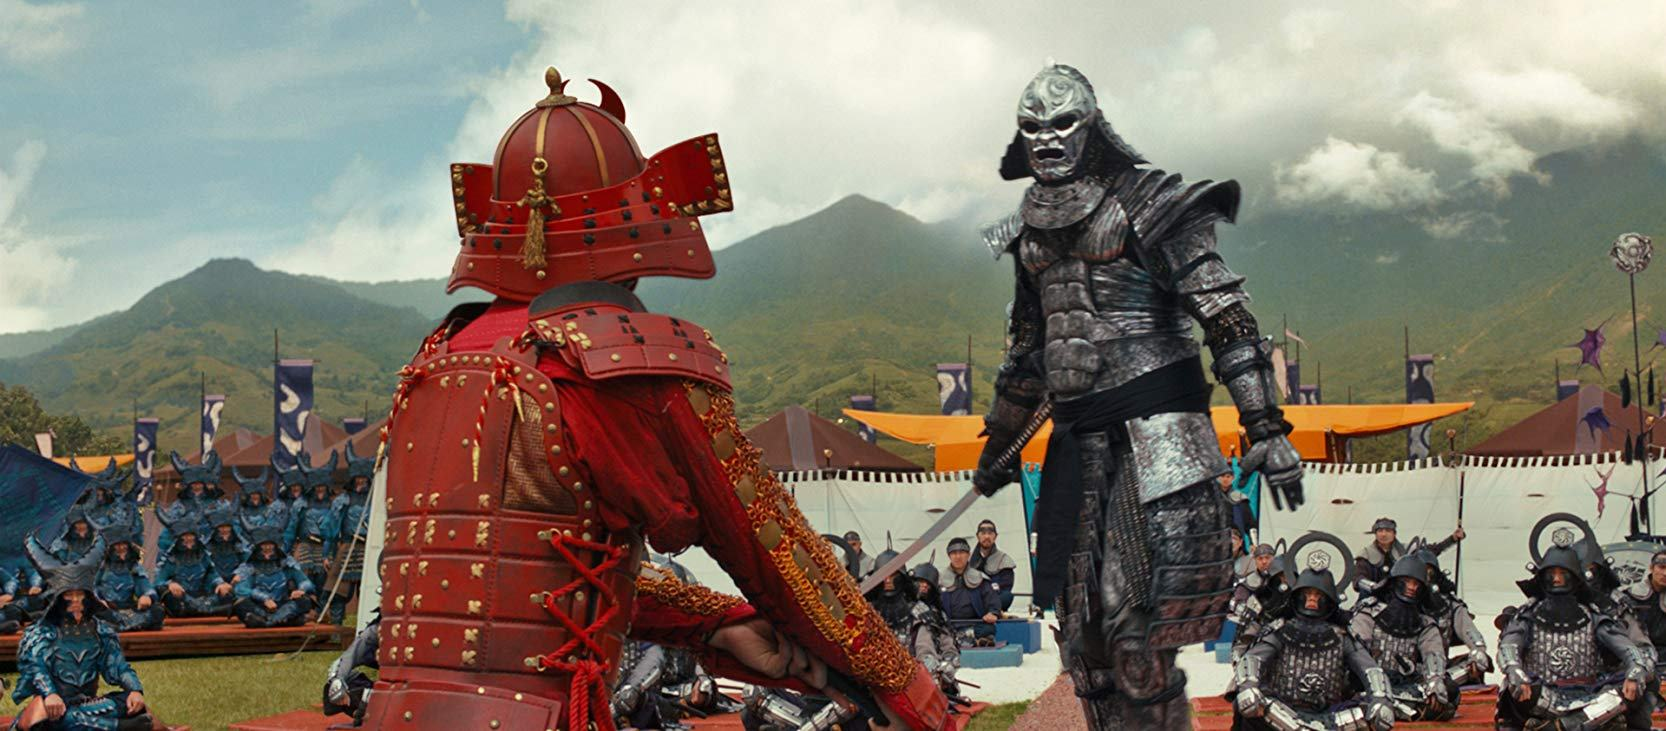 Showdown between rival sides in 47 Ronin (2013)